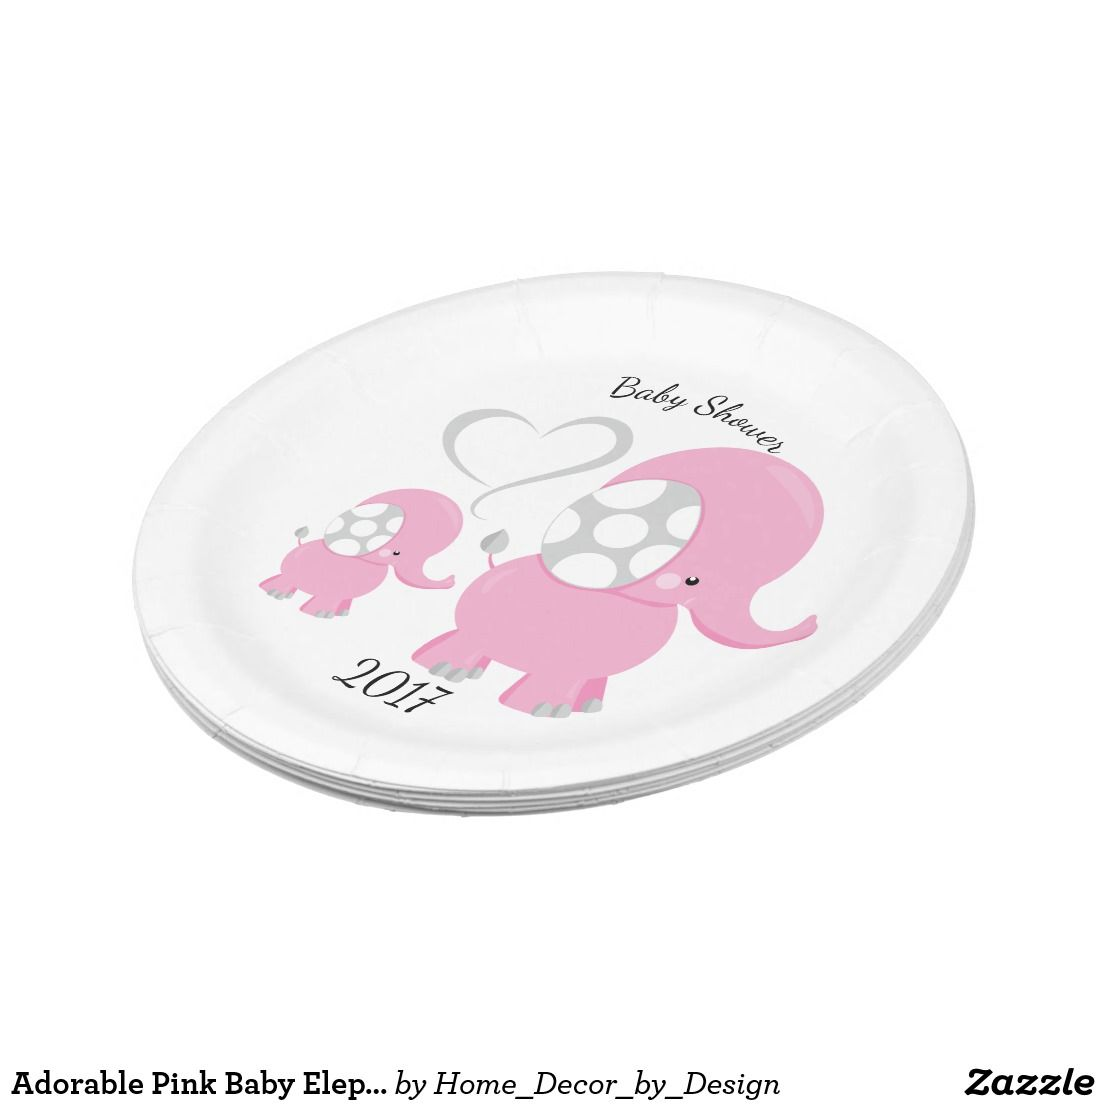 Elephant Baby Baby Gifts Paper Plates Napkins Gift Ideas  sc 1 st  Pinterest & Pin by Painted Dreams Designs on Paper Plates and Napkins | Pinterest